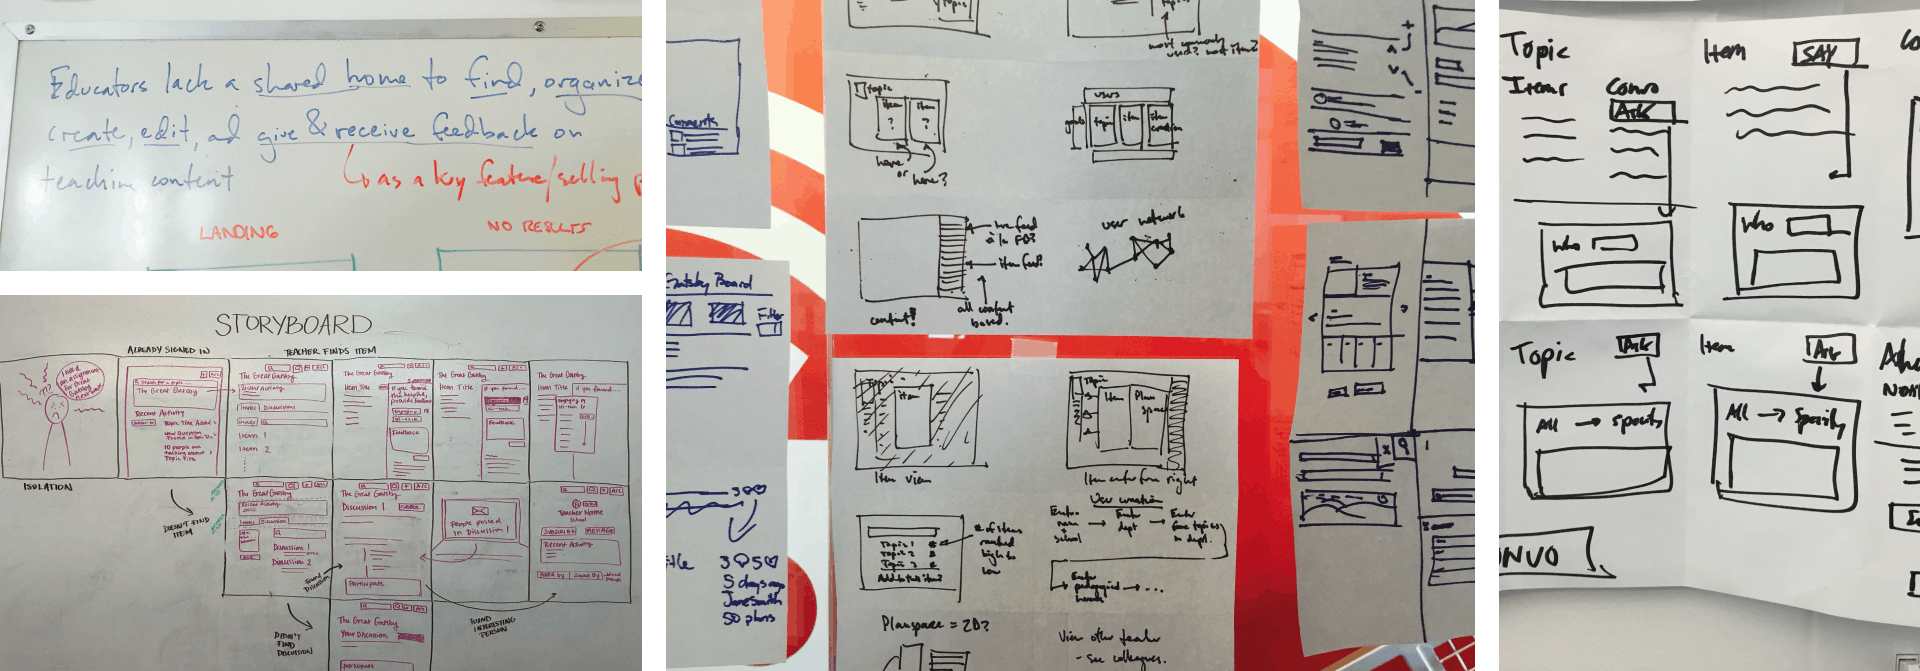 Four photos from the Athena design sprints; A problem statement on a whiteboard, a storyboard of a series of screens on a whiteboard, two photos of crazy eights being hung up.